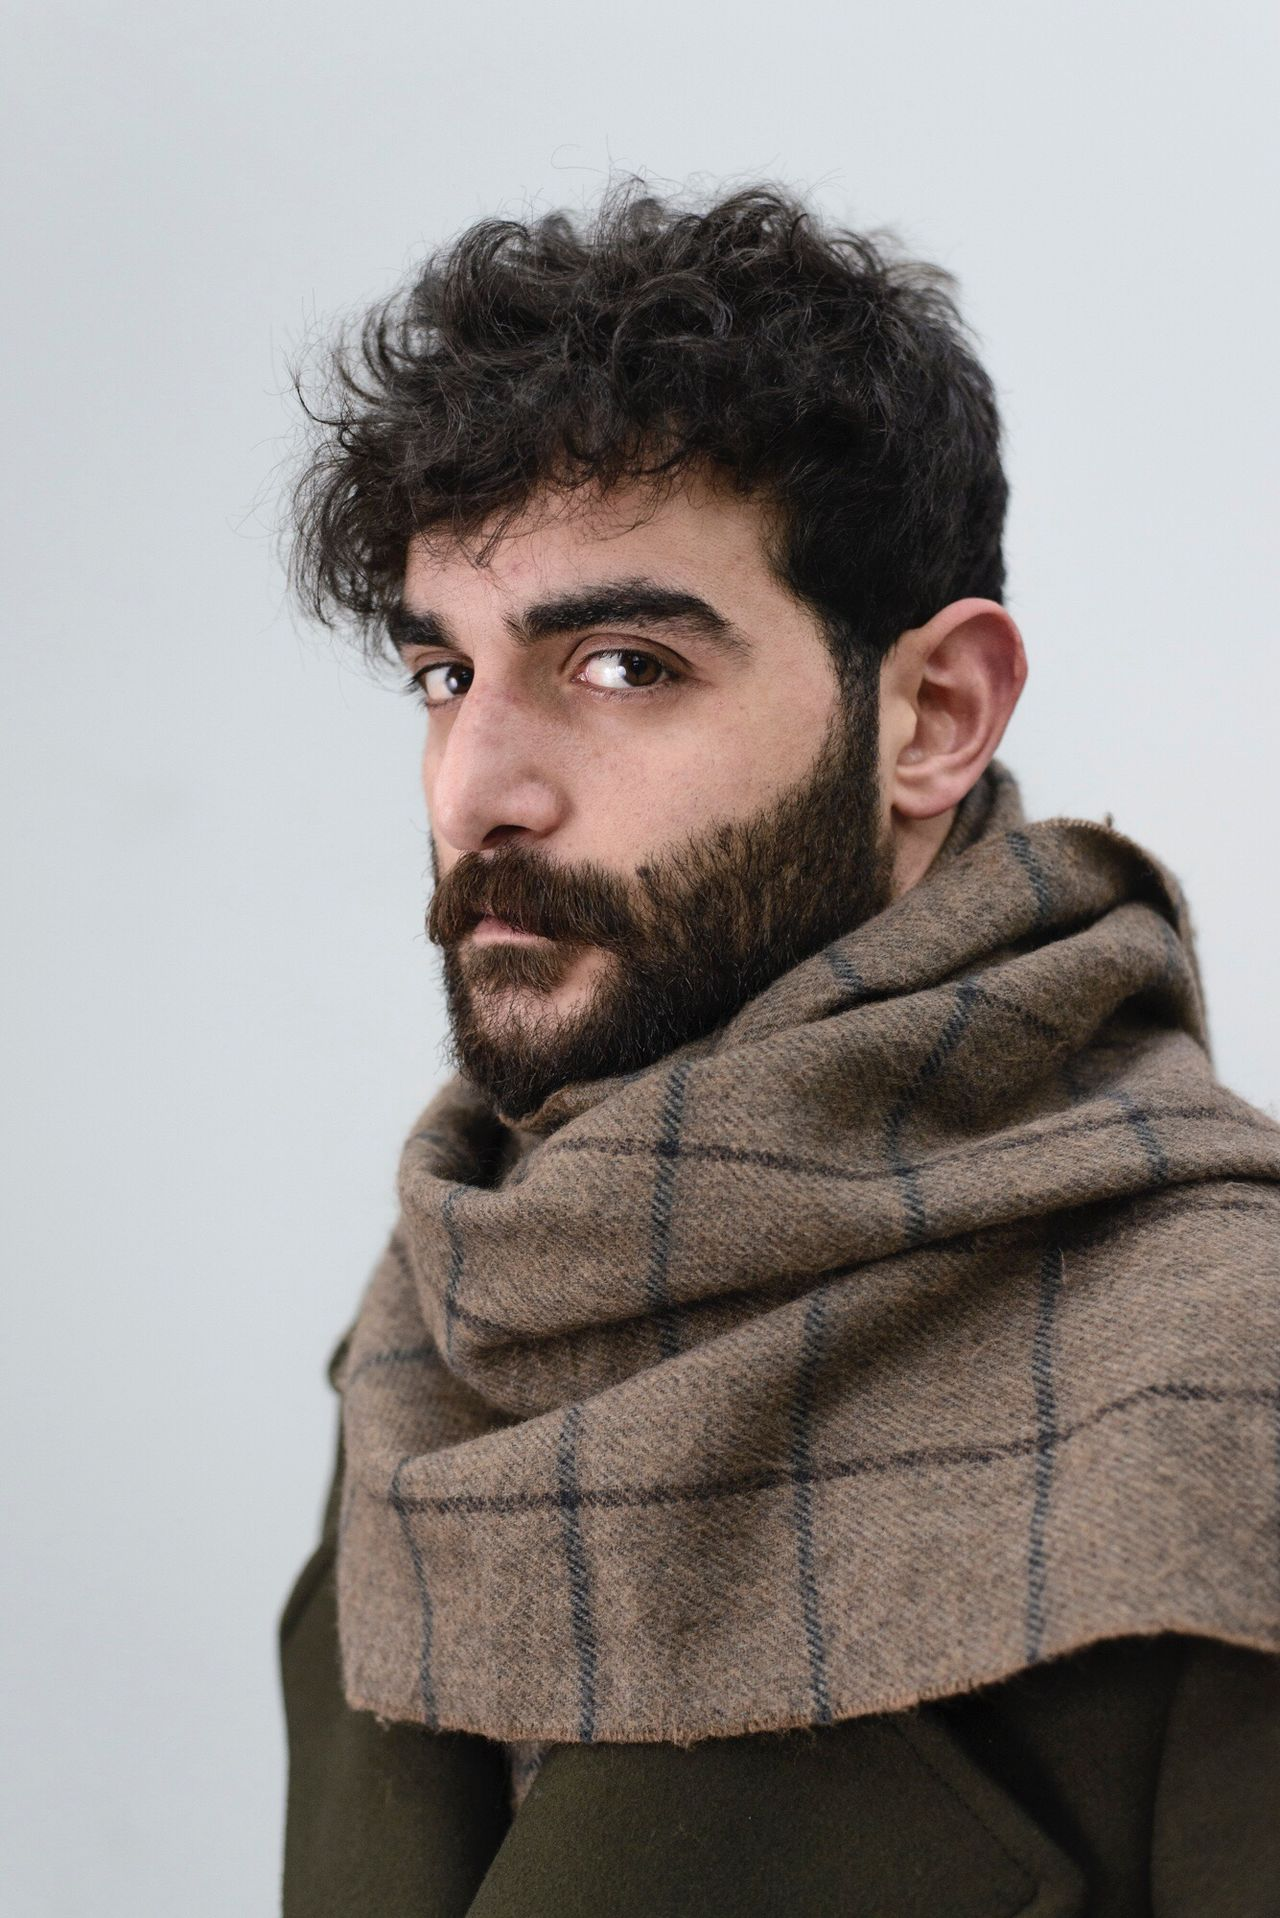 The Portraitist - 2015 EyeEm Awards One Person Looking At Camera Beard Studio Shot Young Adult Warm Clothing Close-up Day White Background People Adult The Week On EyeEm